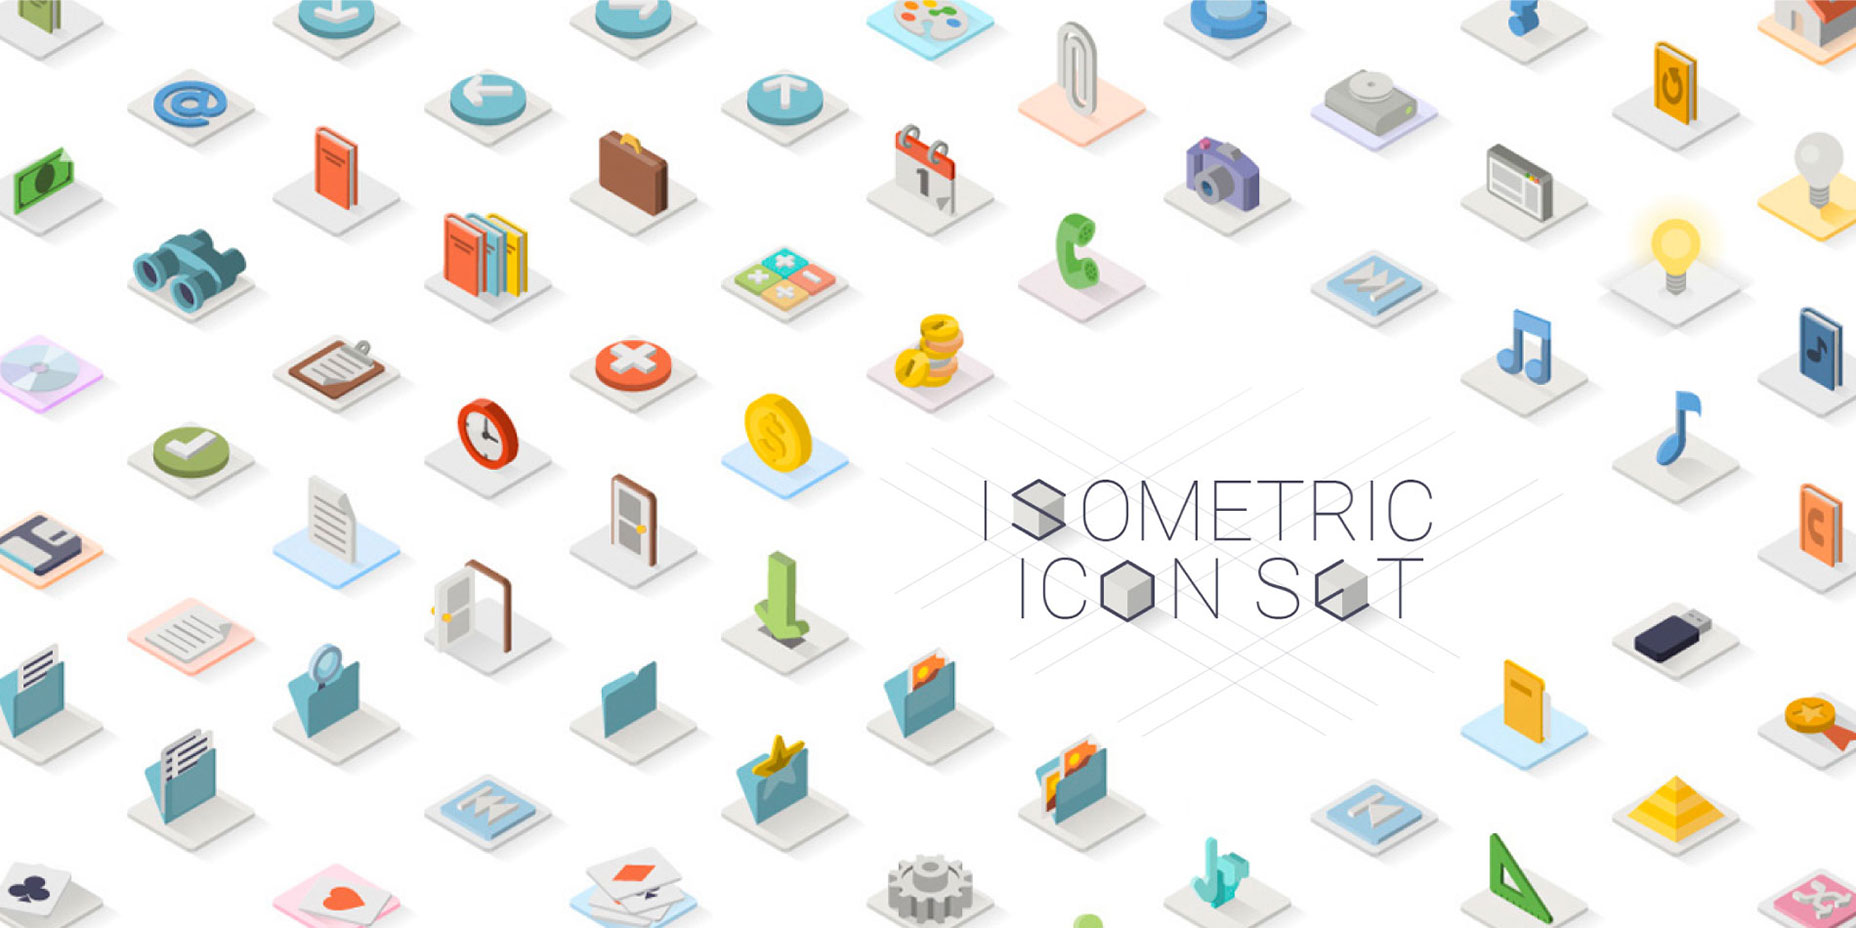 is-isometric-icons-1900x950